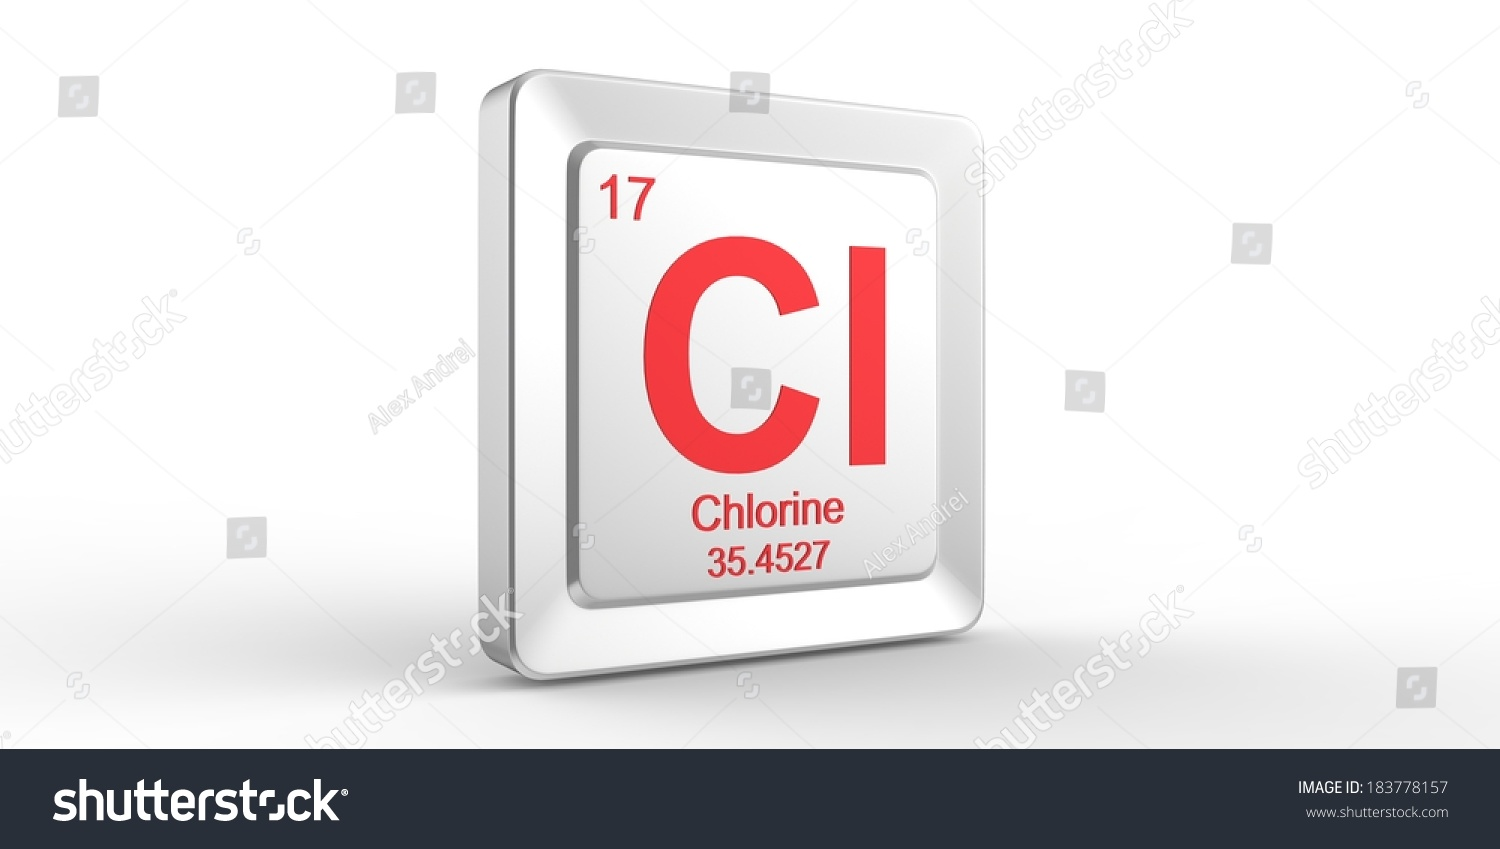 Cl Symbol 17 Material Chlorine Chemical Stock Illustration 183778157